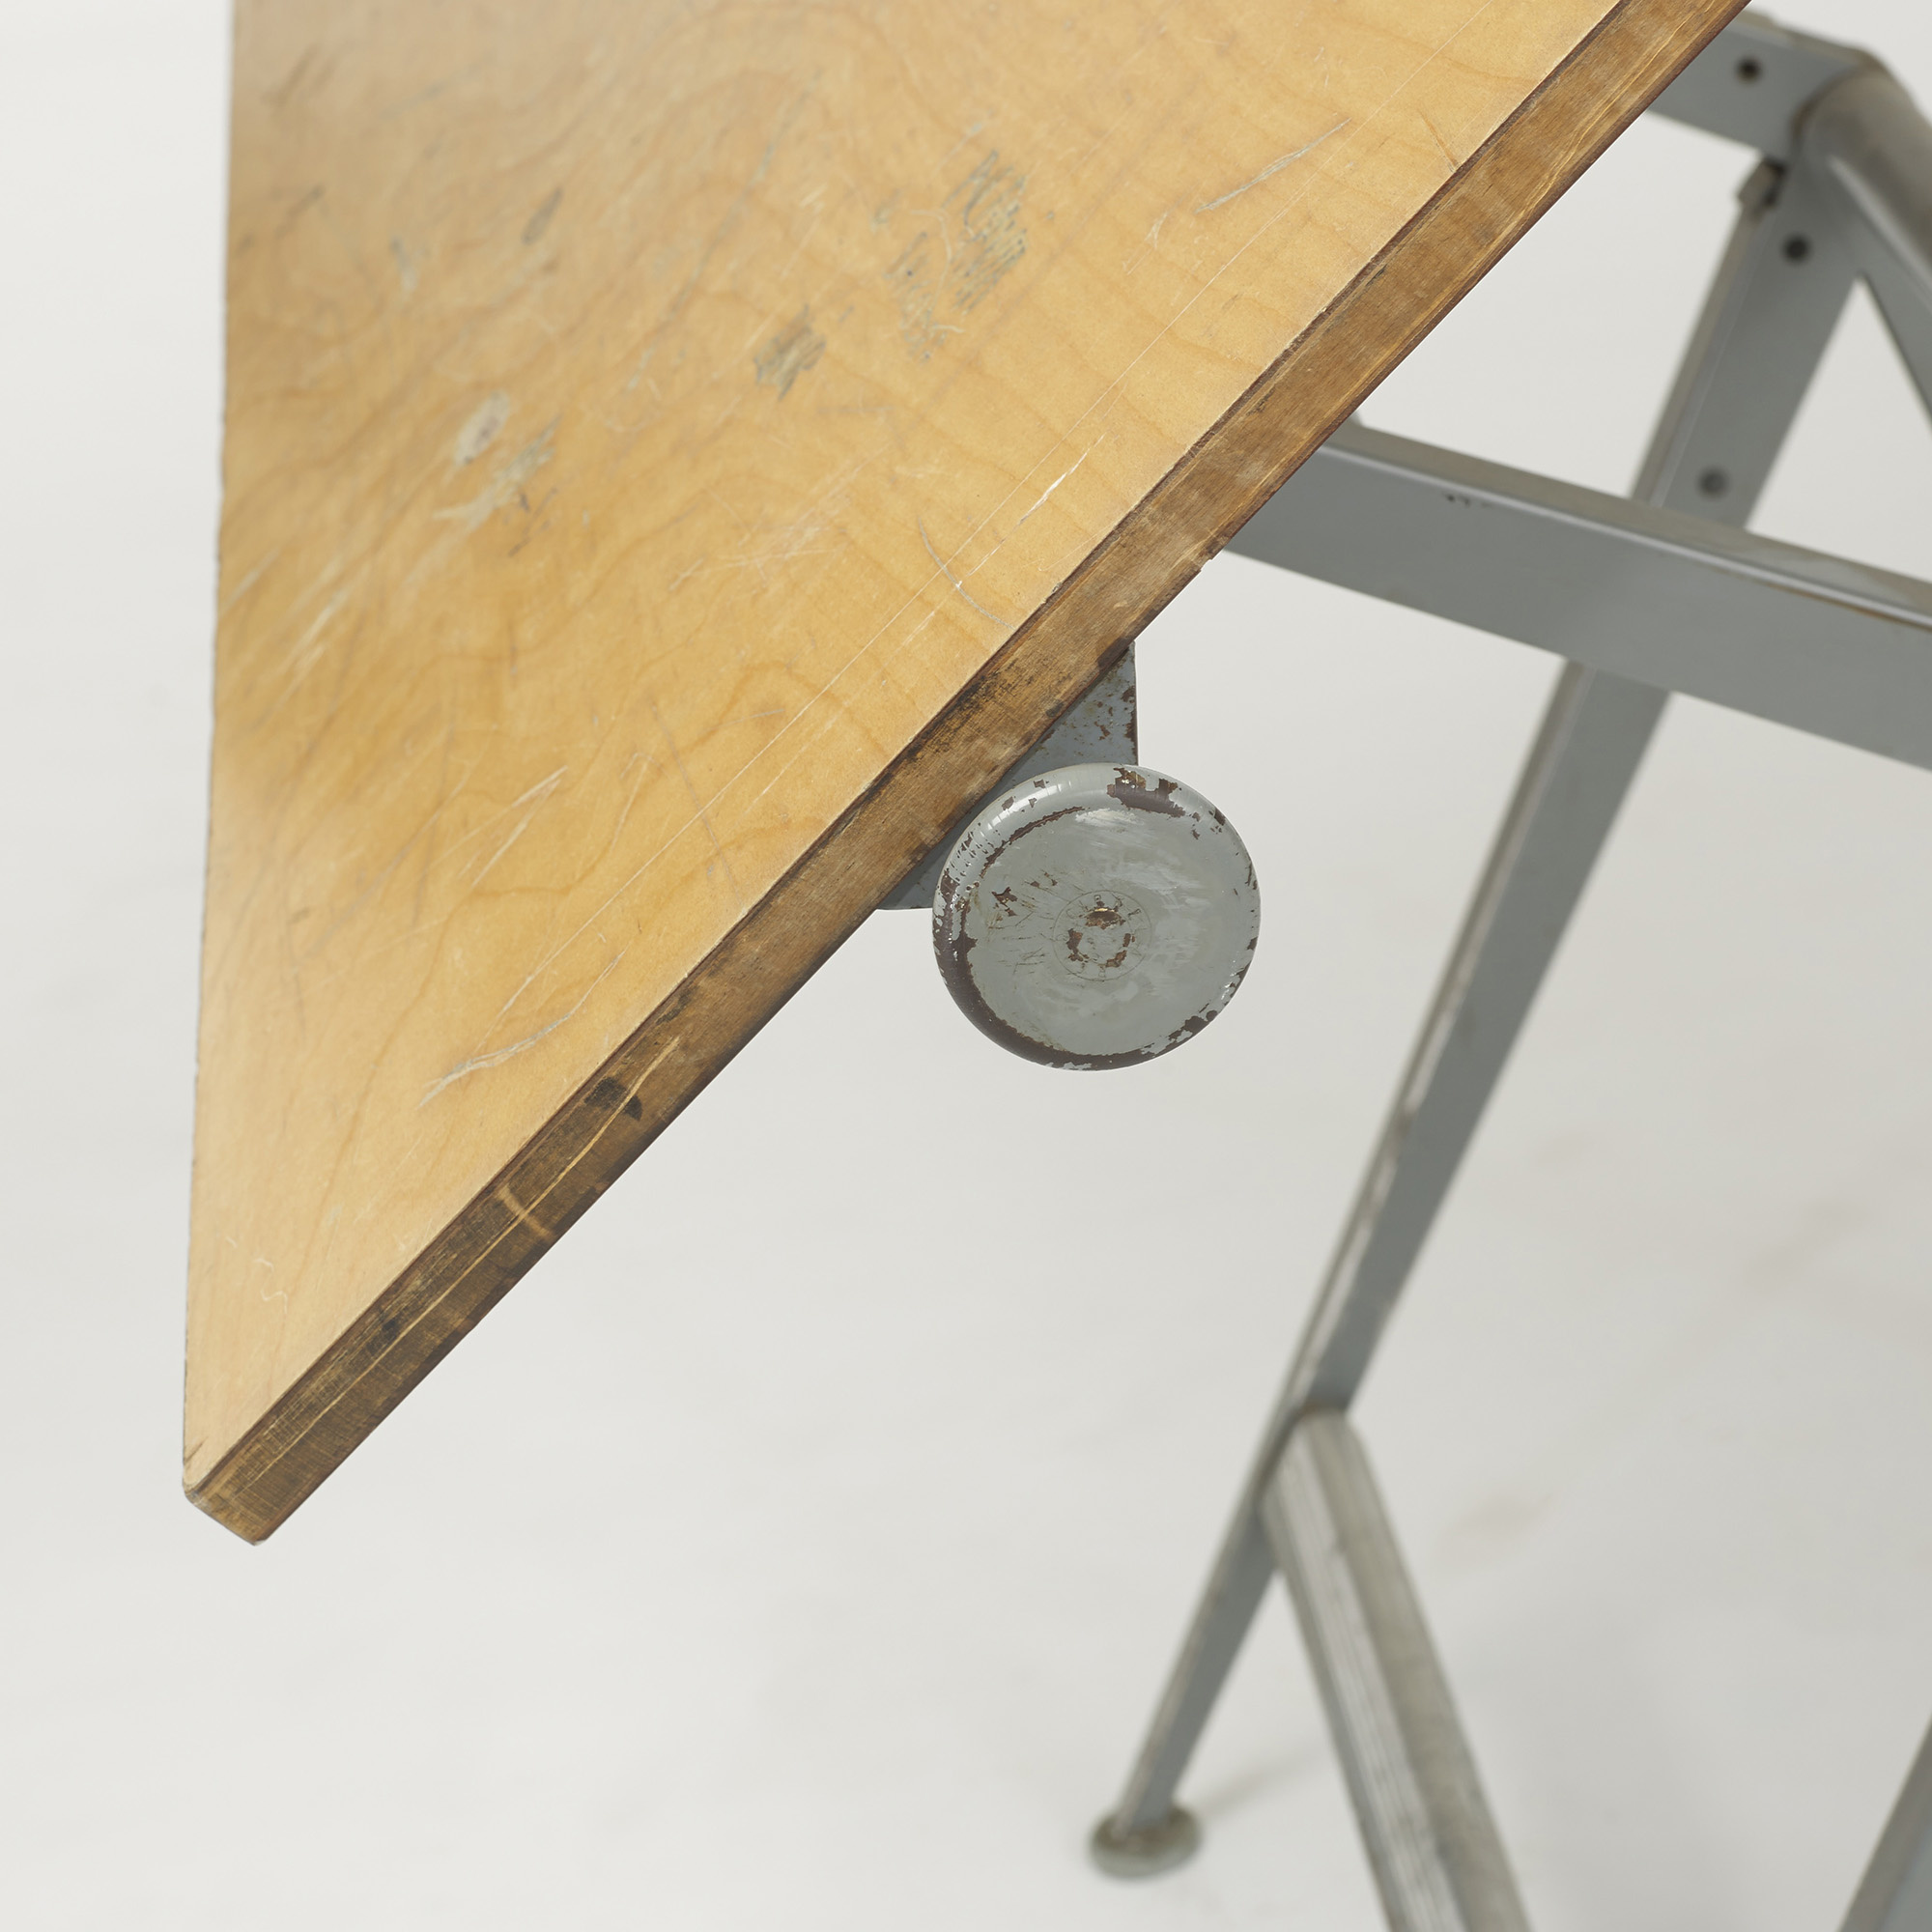 454: Wim Rietveld and Friso Kramer / drafting table (3 of 3)